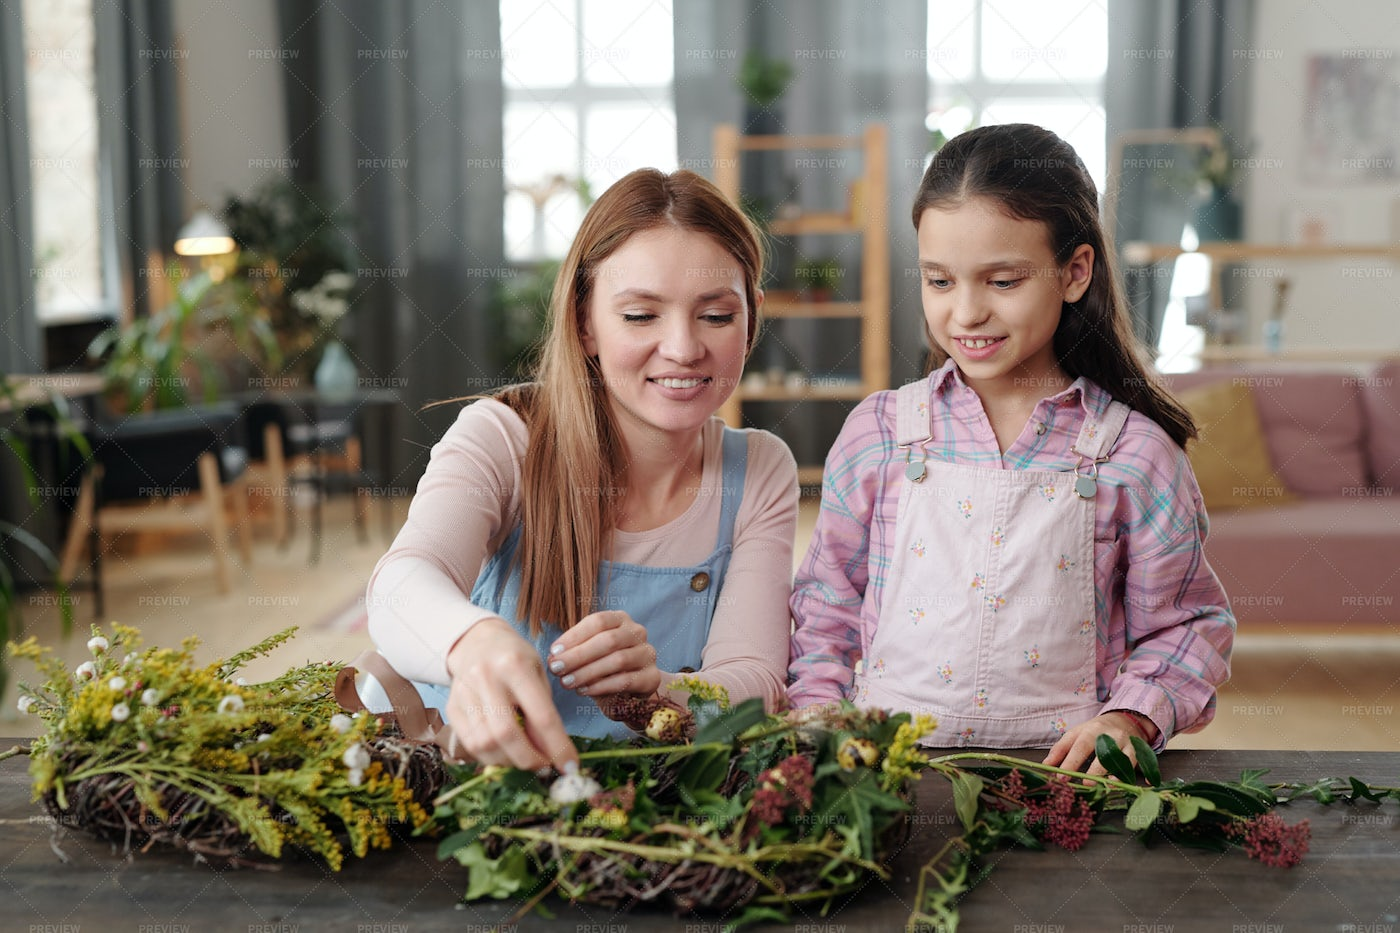 Family Making Wreath From Flowers: Stock Photos